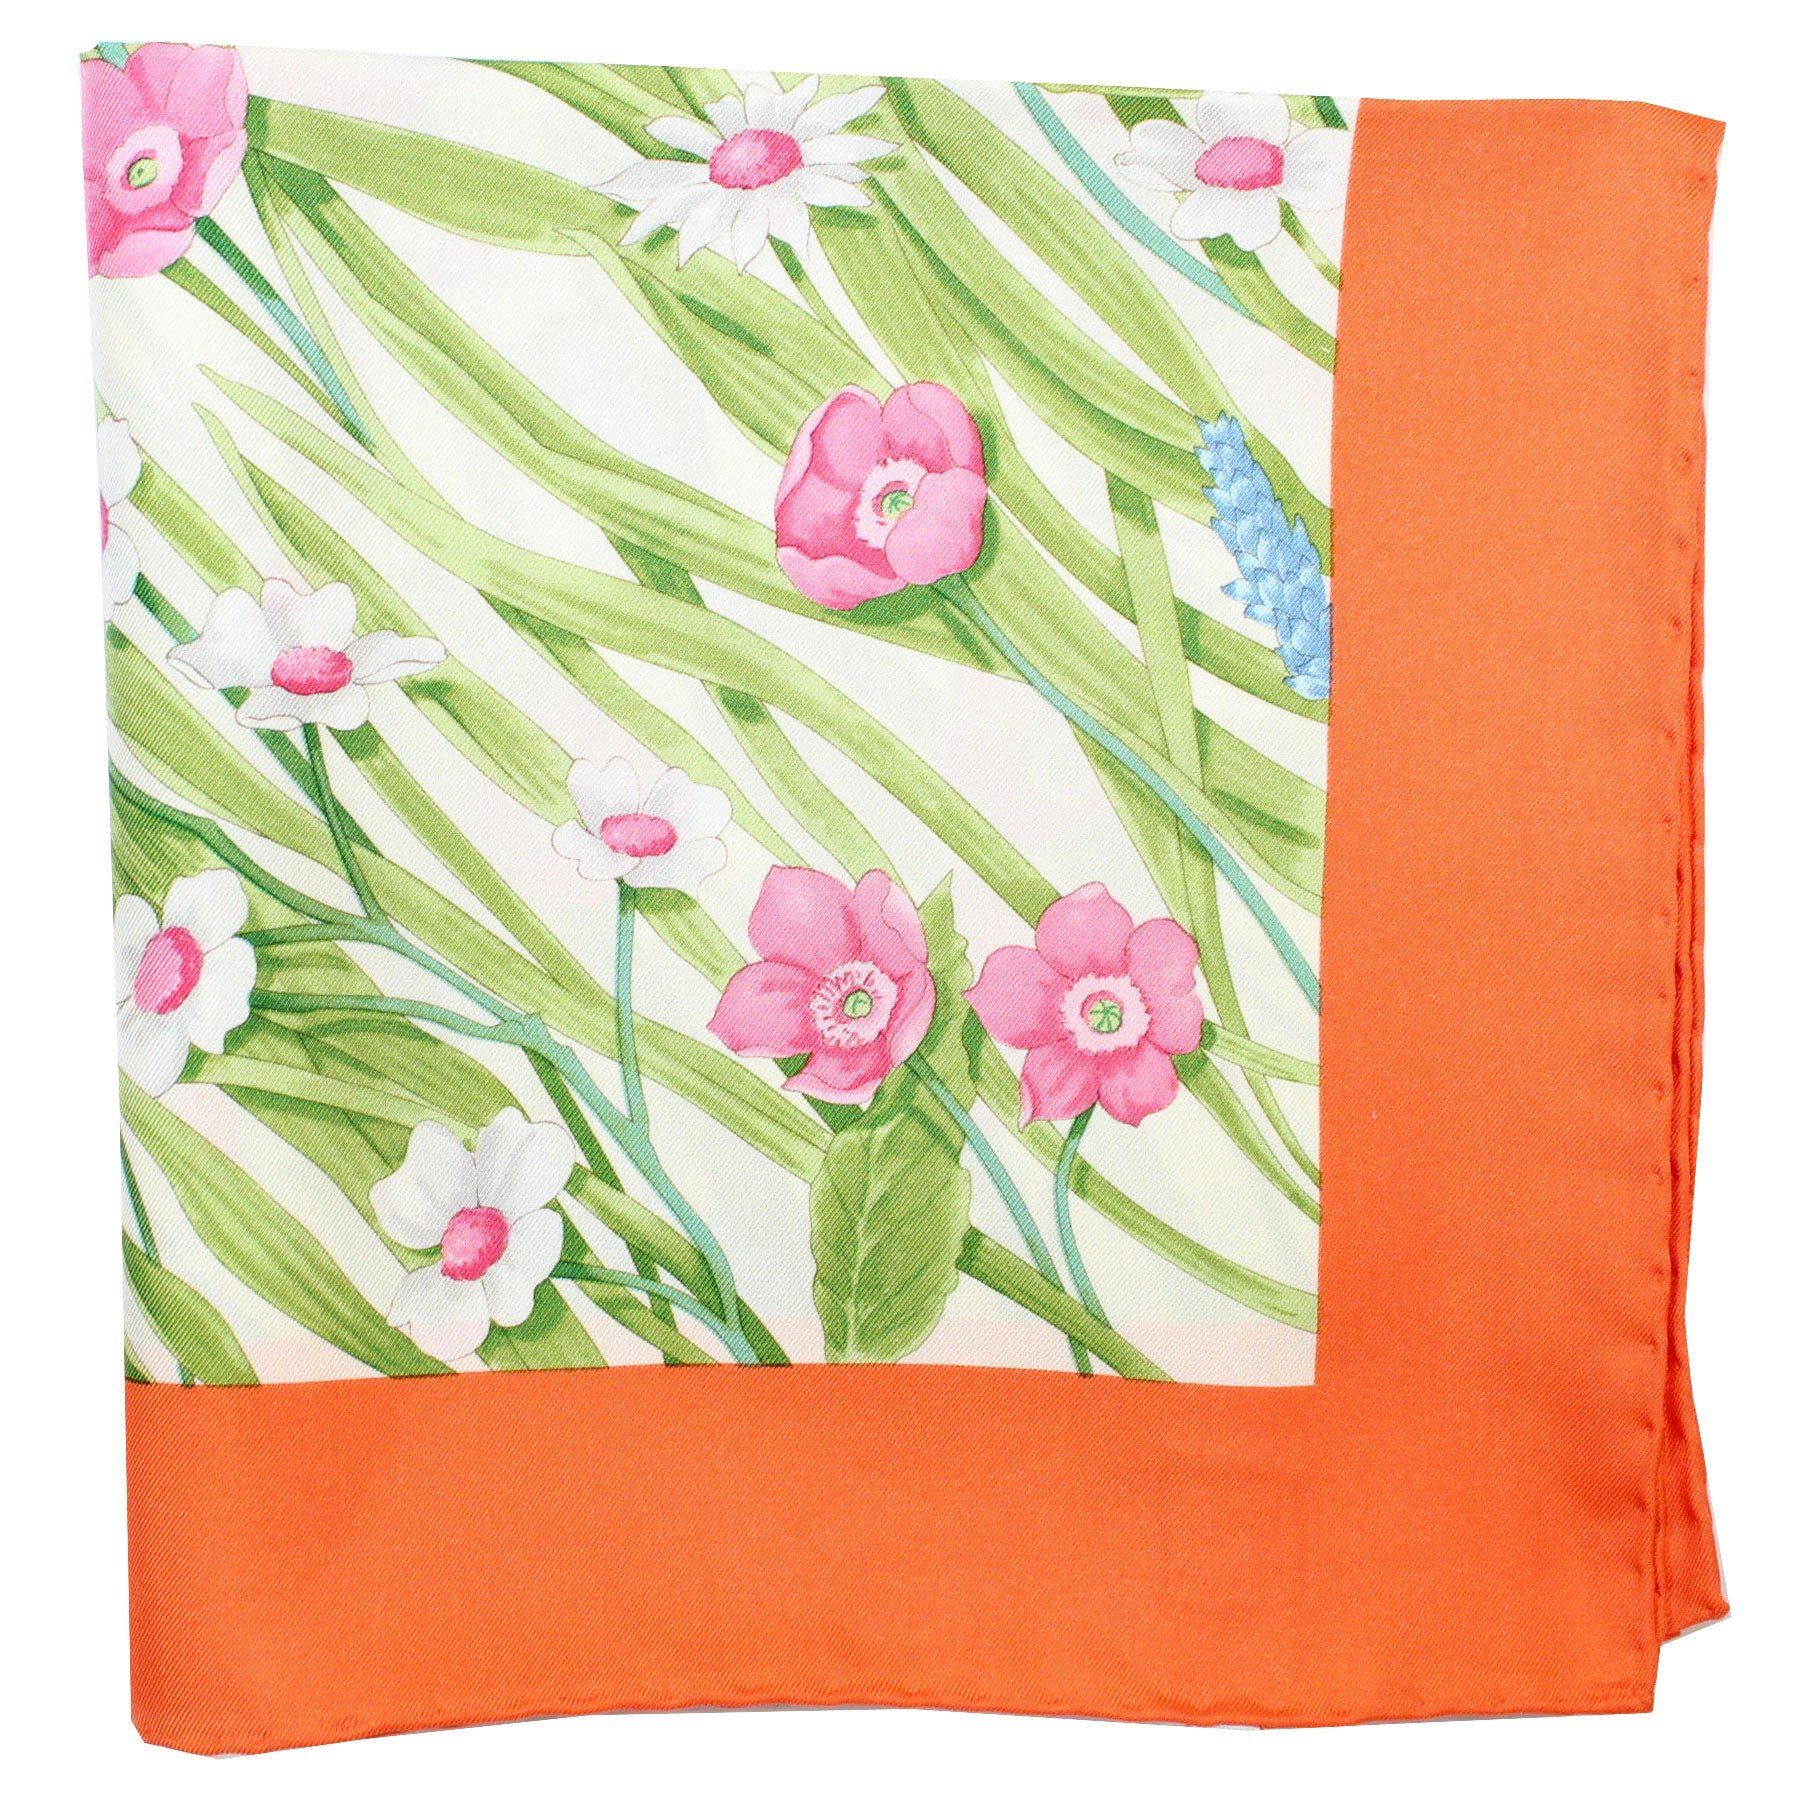 Salvatore Ferragamo Scarf Orange Green Pink Floral Alissa - Large Square Twill Silk Foulard